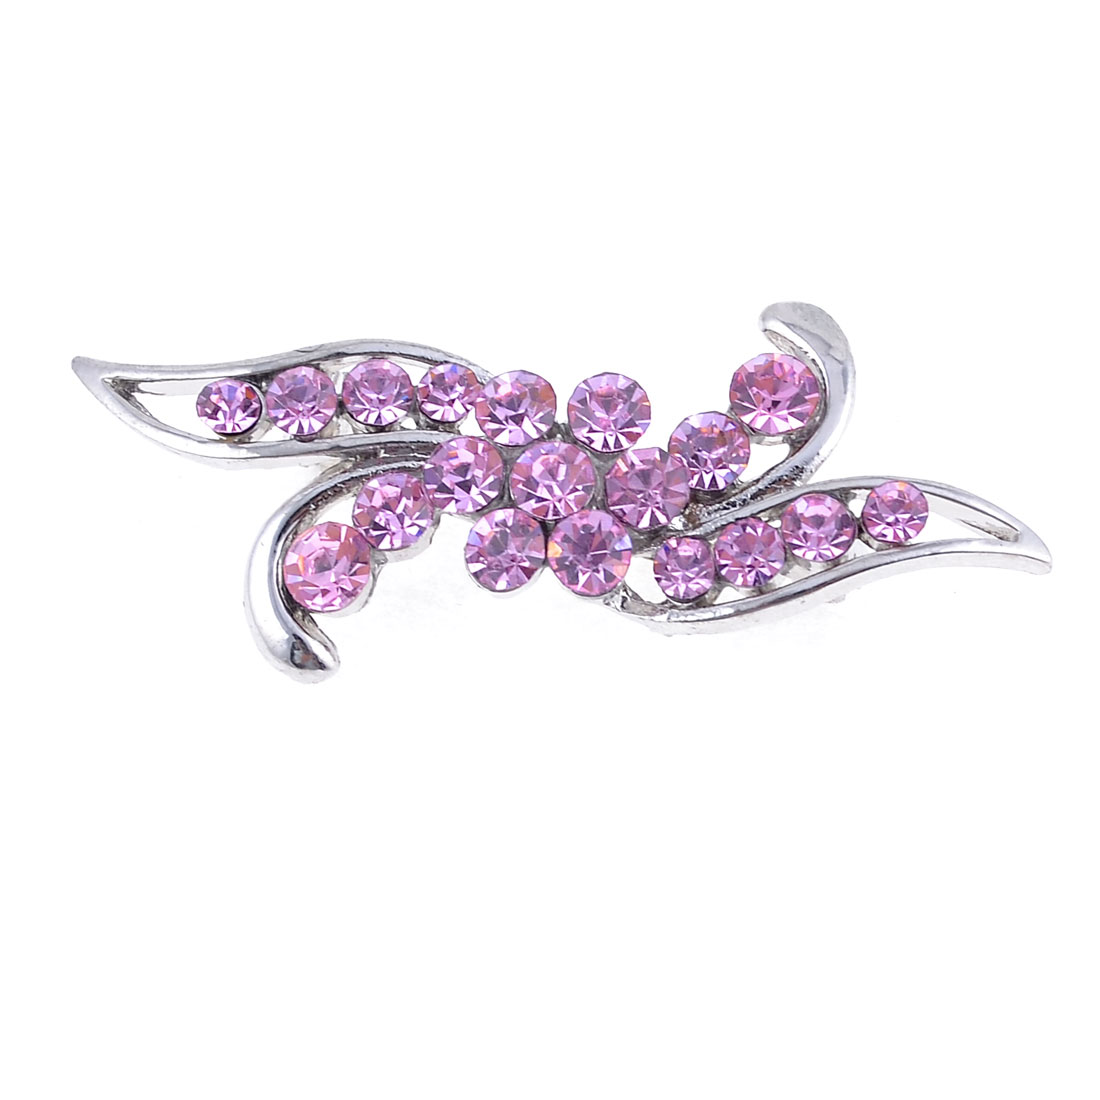 "2"" Width Pink Rhinestones Cluster Silver Tone Leaf Shaped Brooch for Ladies"